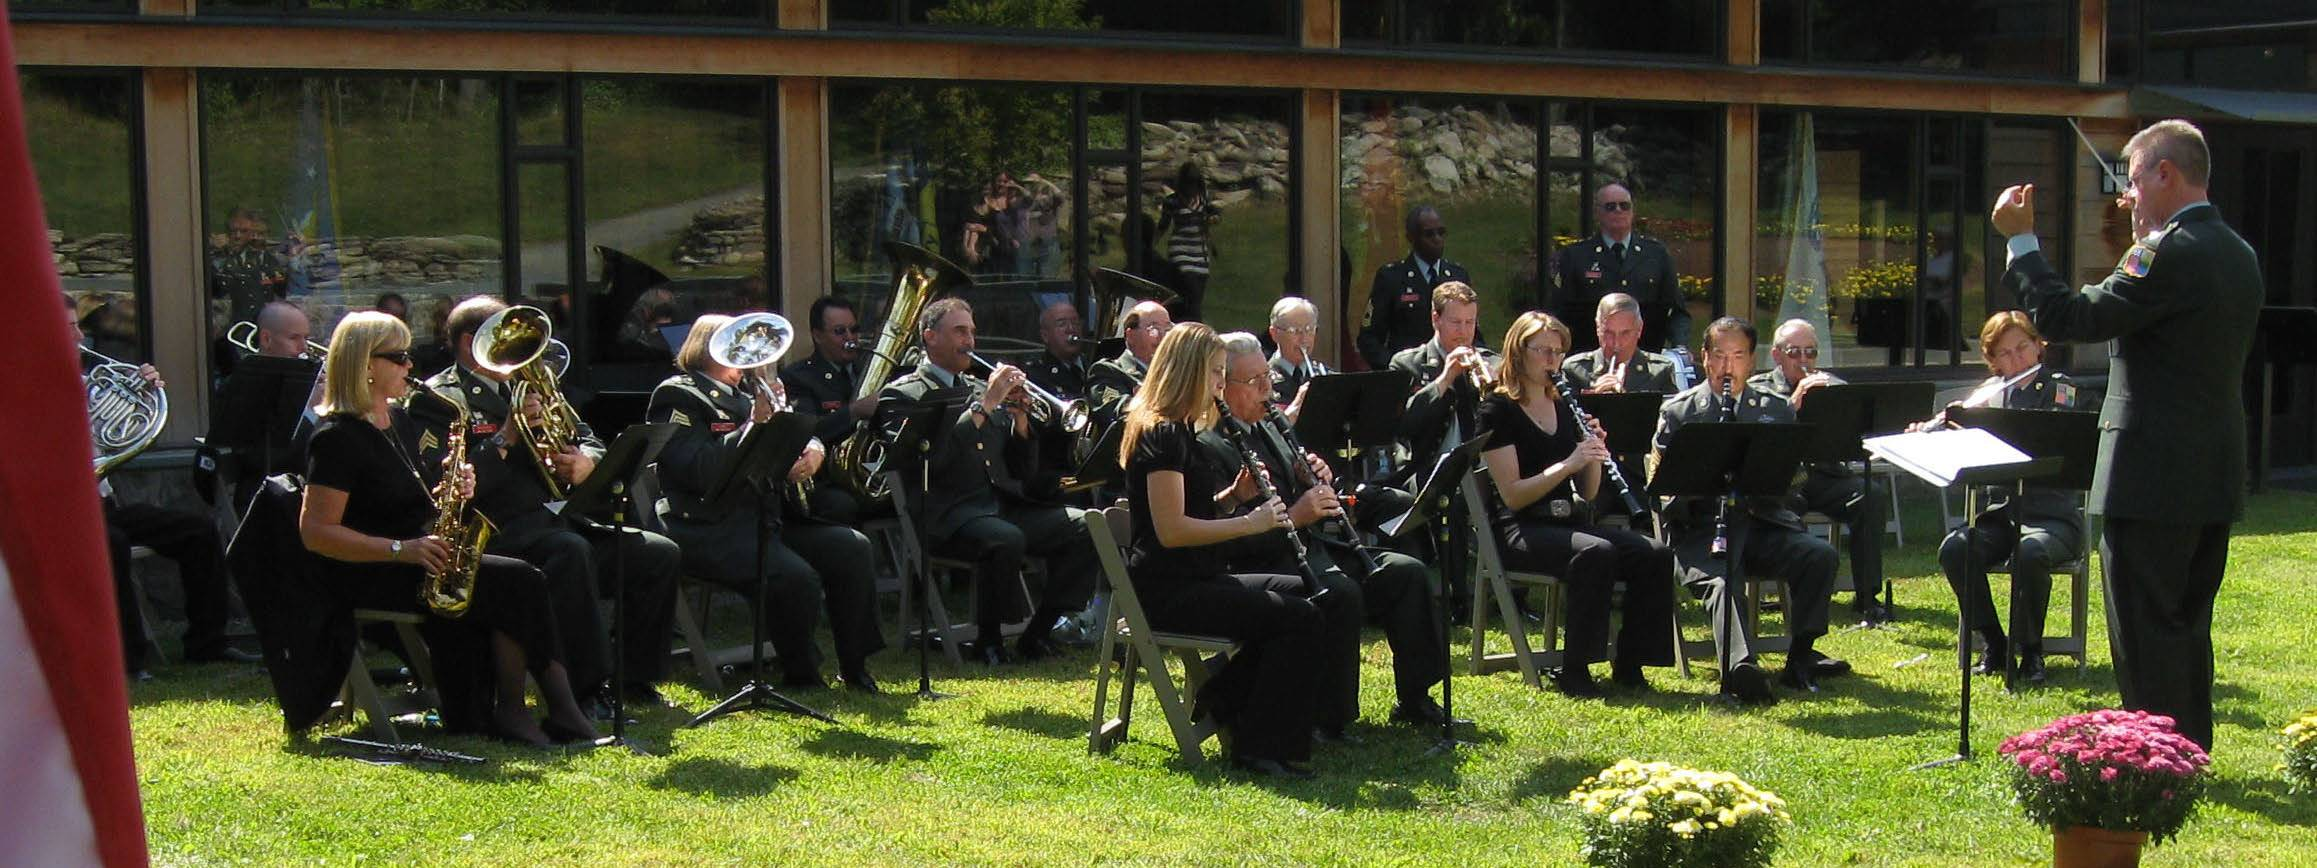 Conducting the 89th Army Band, New York Guard